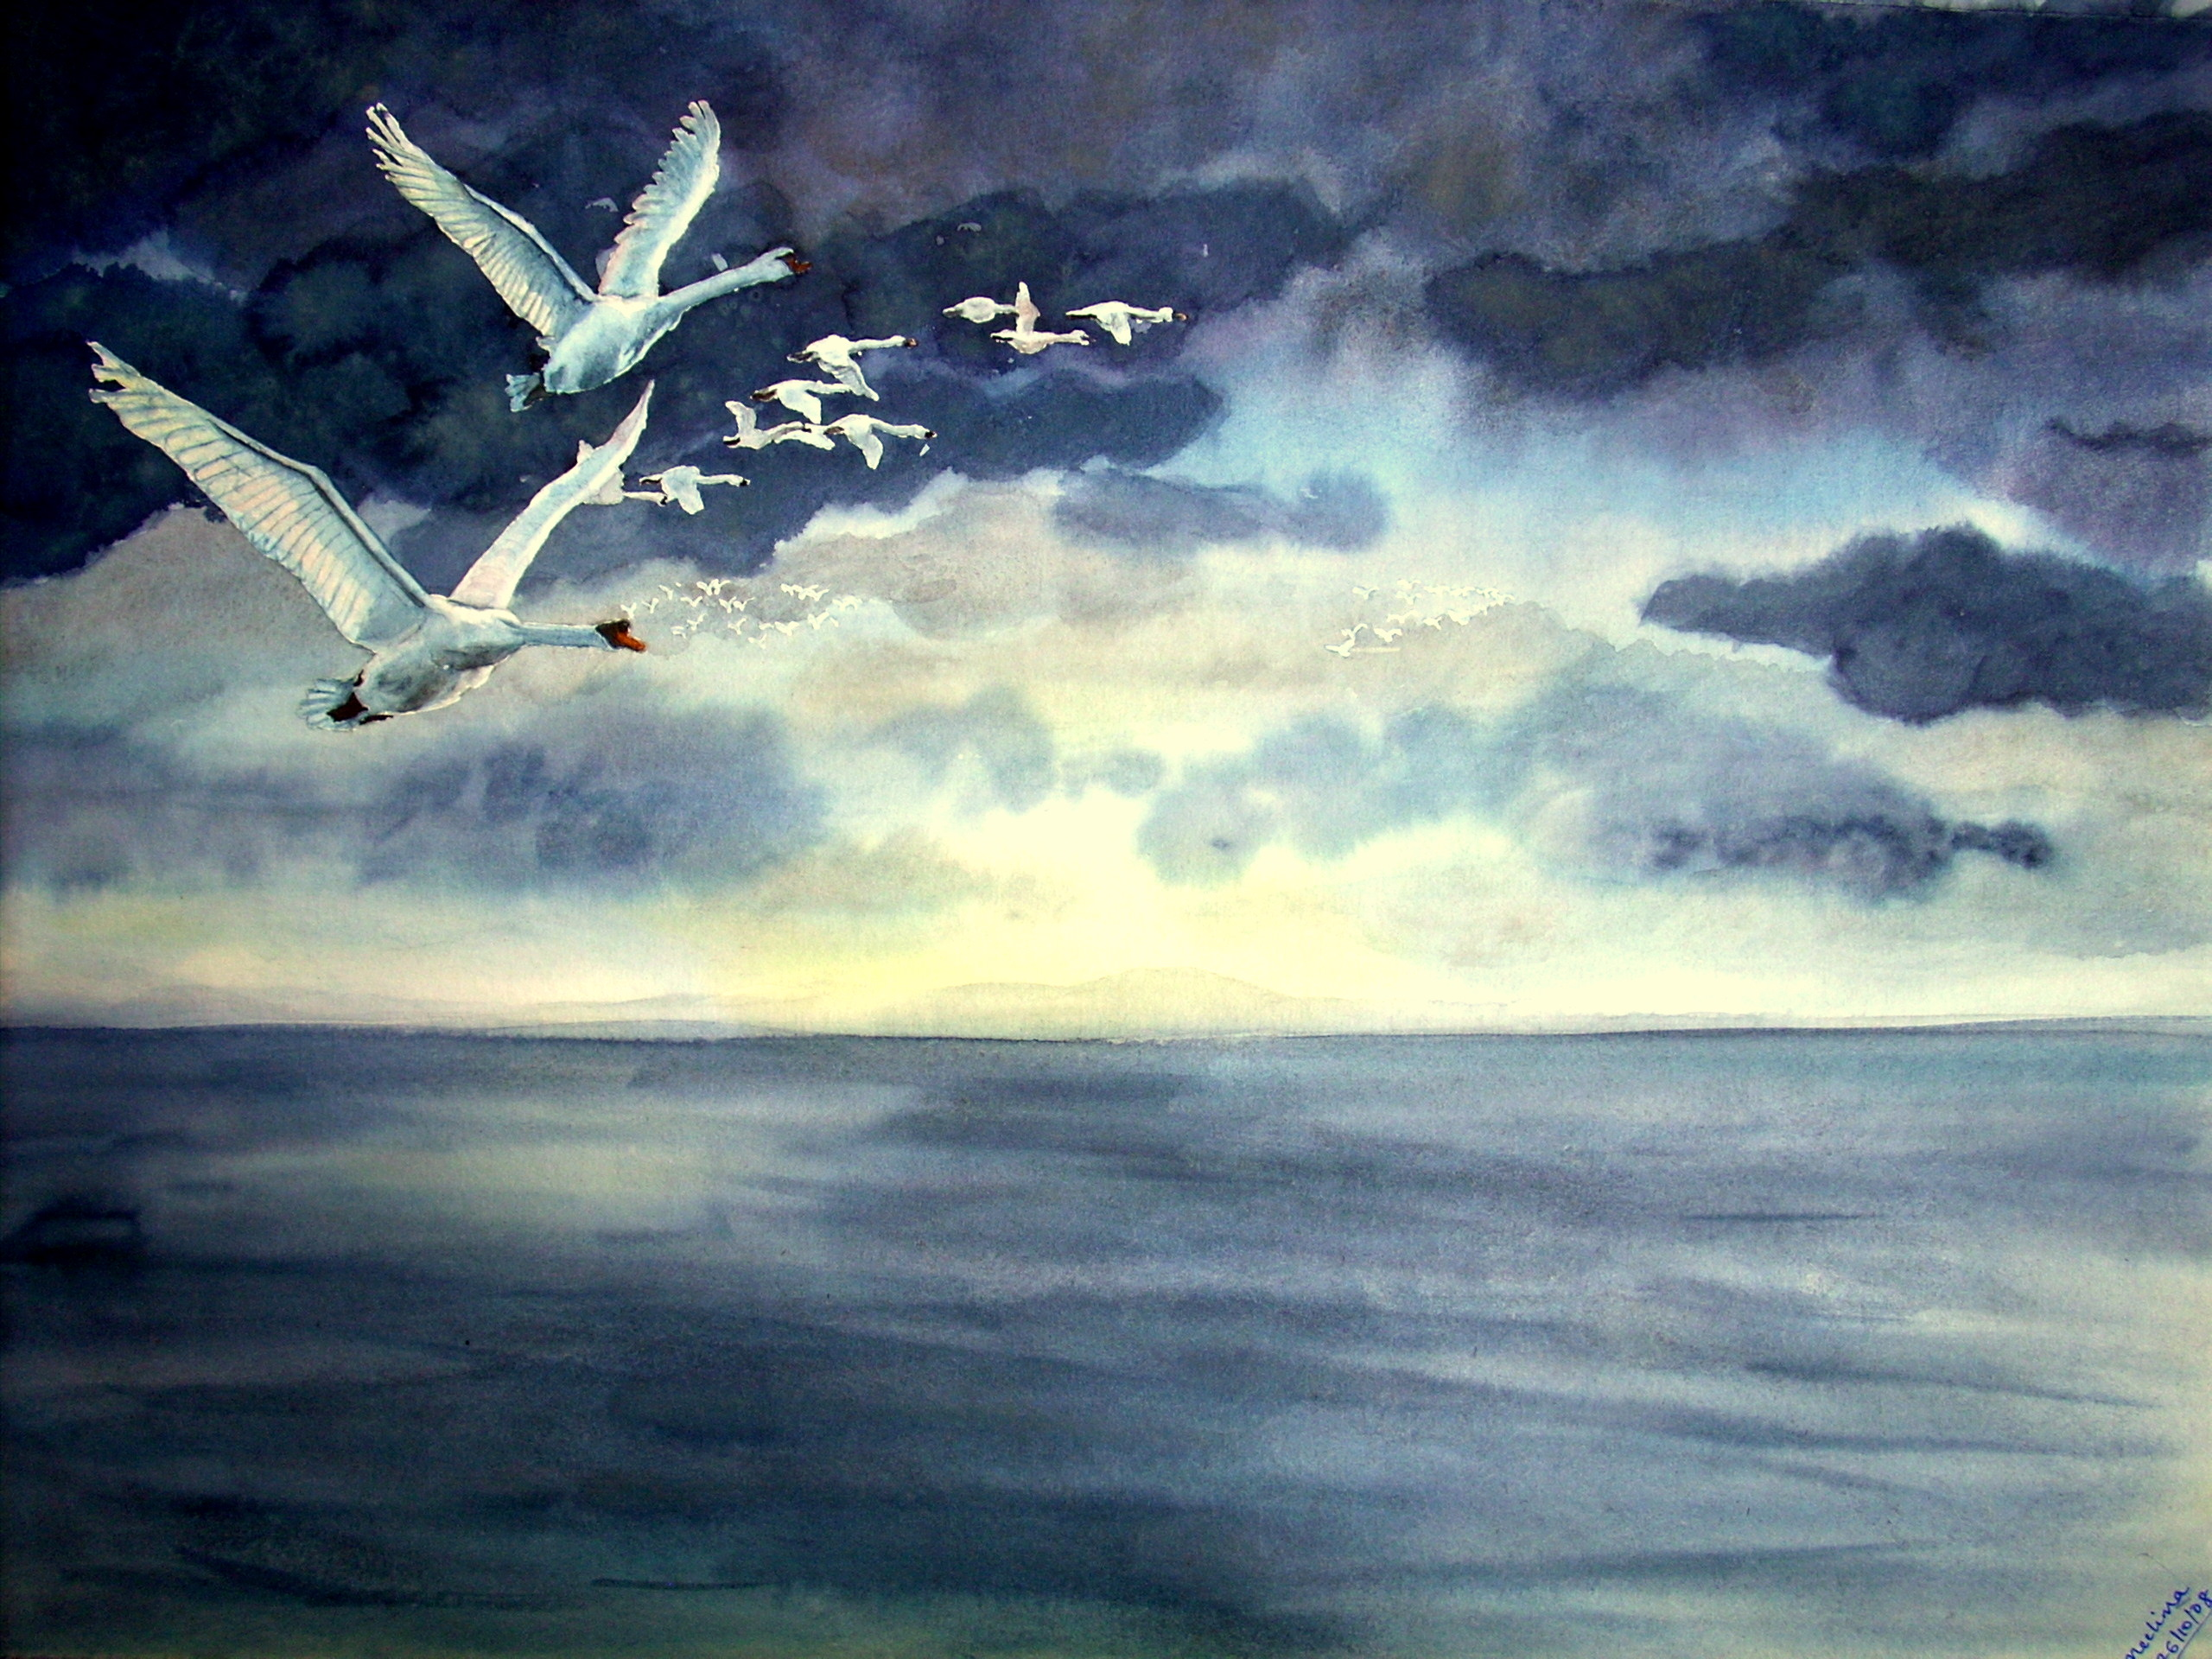 tratto da https://watercolorjournal.wordpress.com/2008/10/26/the-migration-in-the-story-of-the-swan-series/